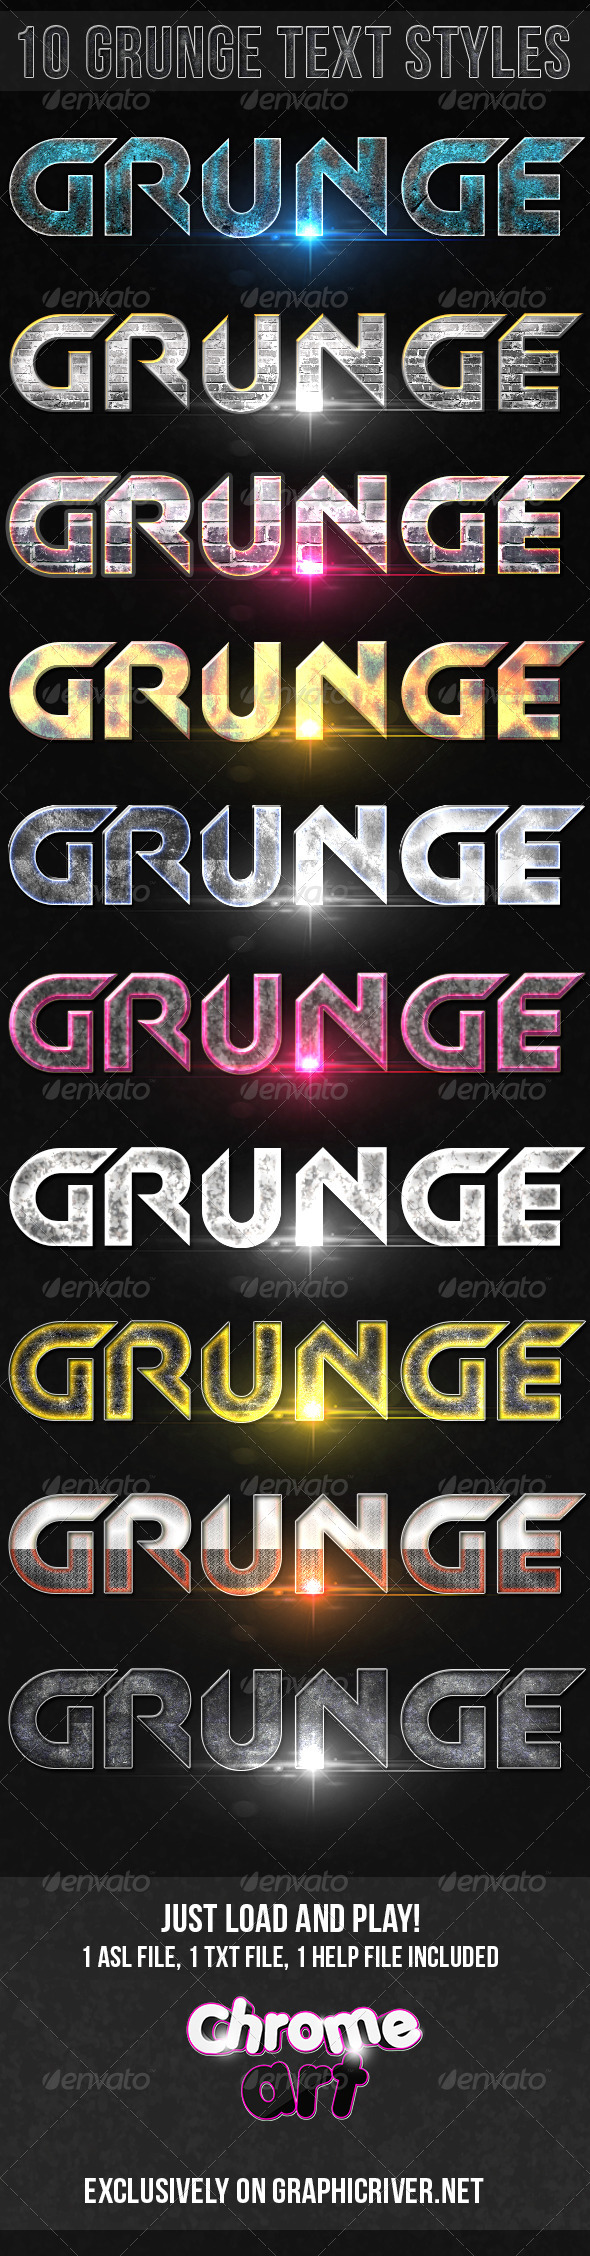 GraphicRiver 10 Grunge Text Styles 4896320